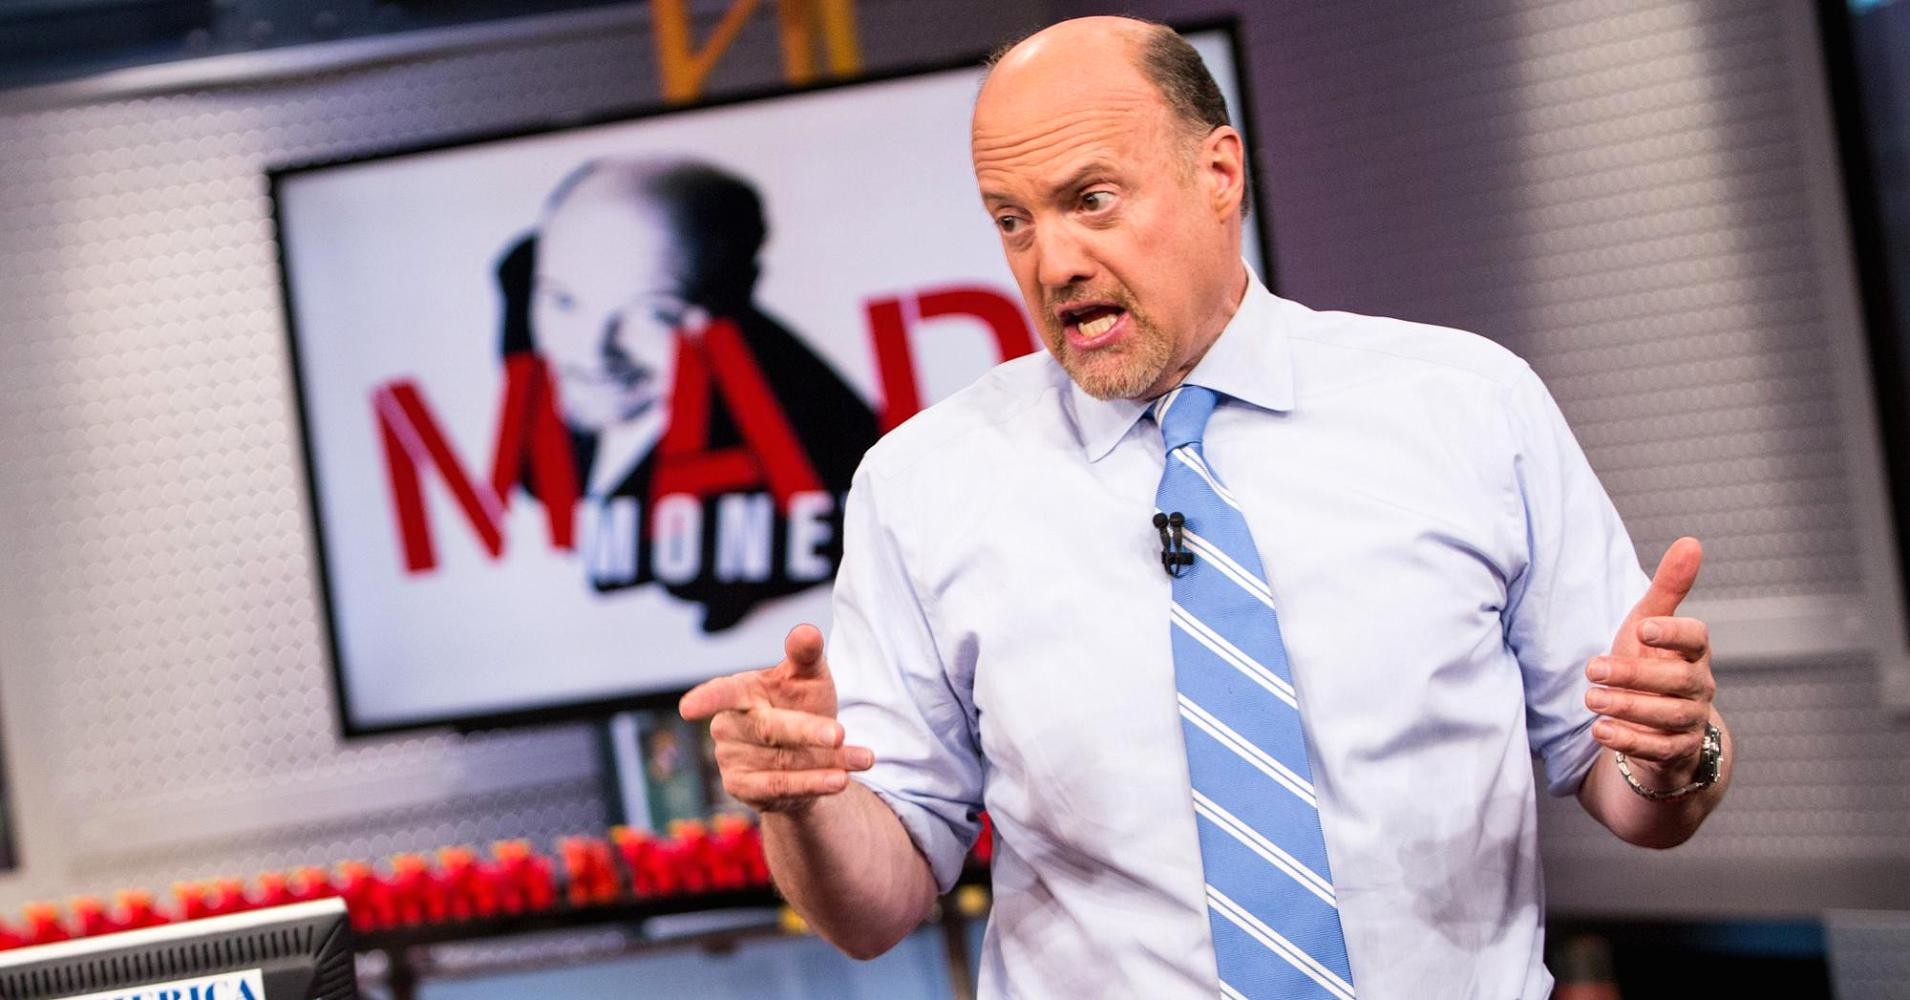 jim cramer mad money cnbc